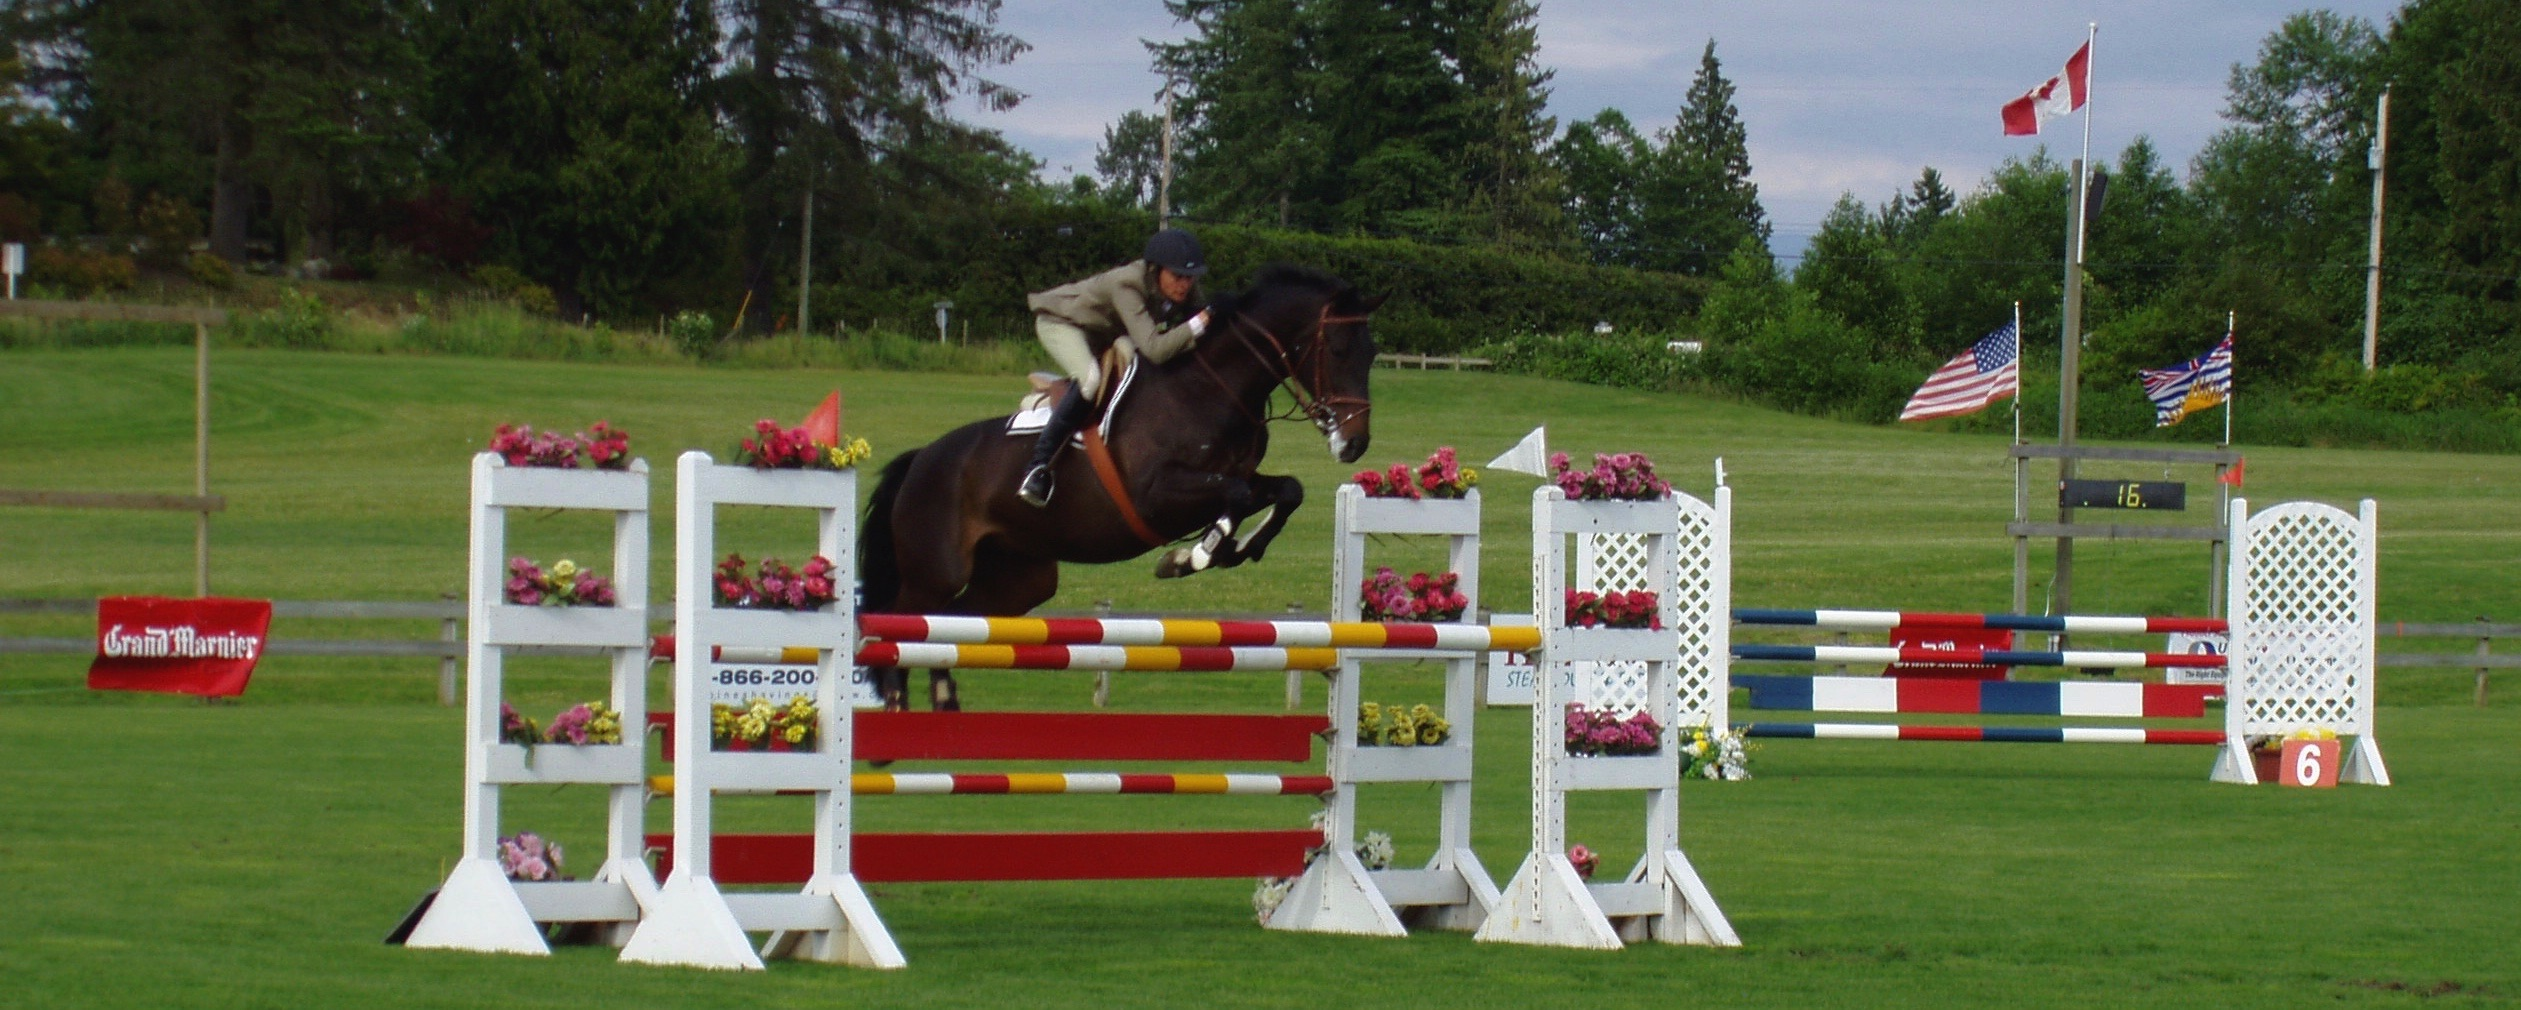 Safe, fun-filled riding lessons, Equine Levels | Twin Rivers ...